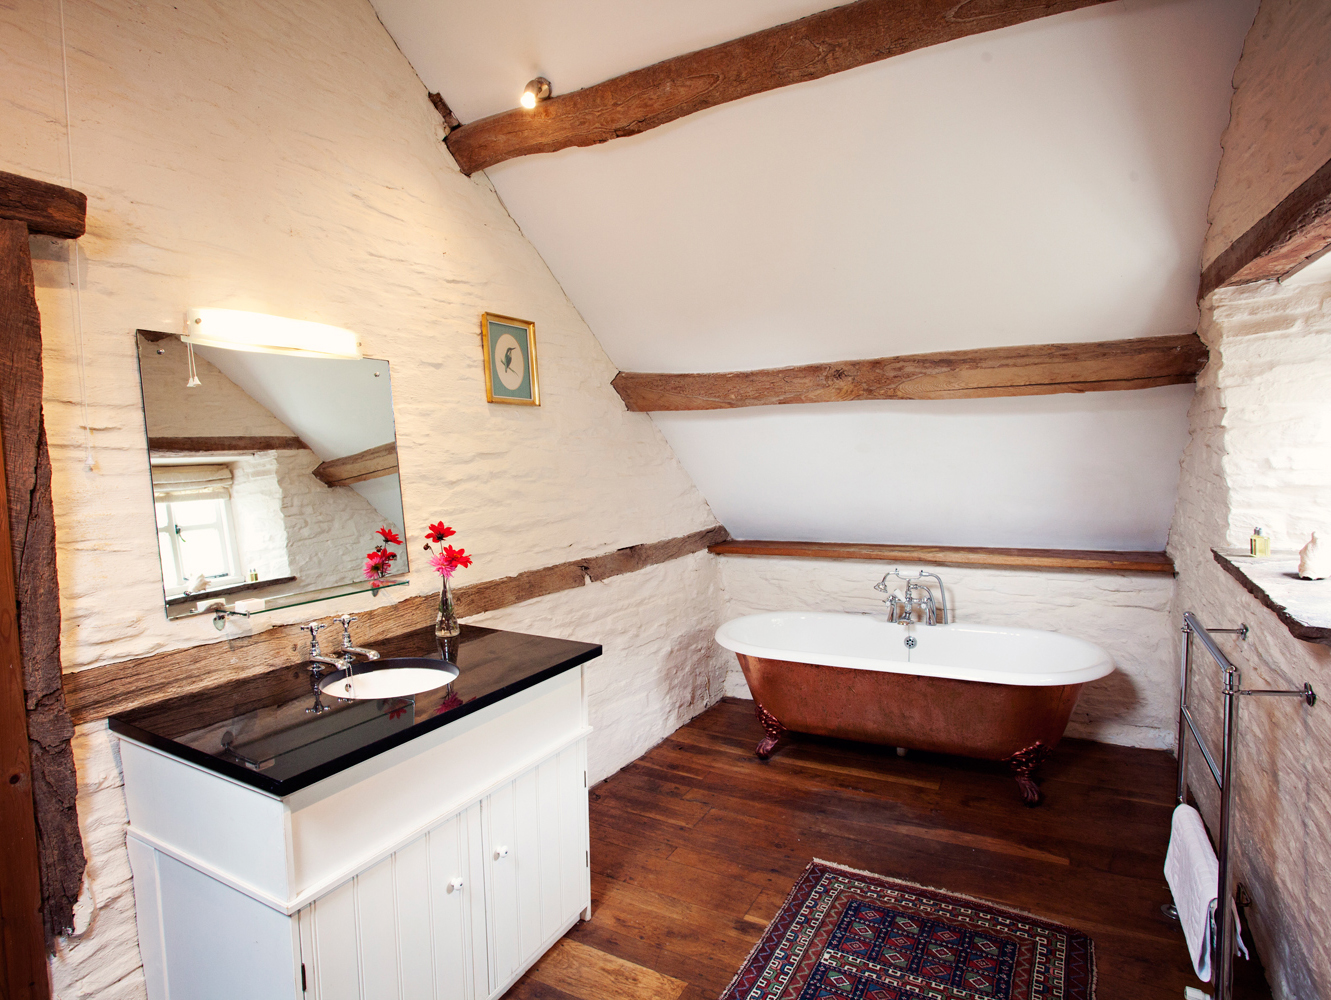 3 Bedroom Cottage in Brecon, Mid Wales